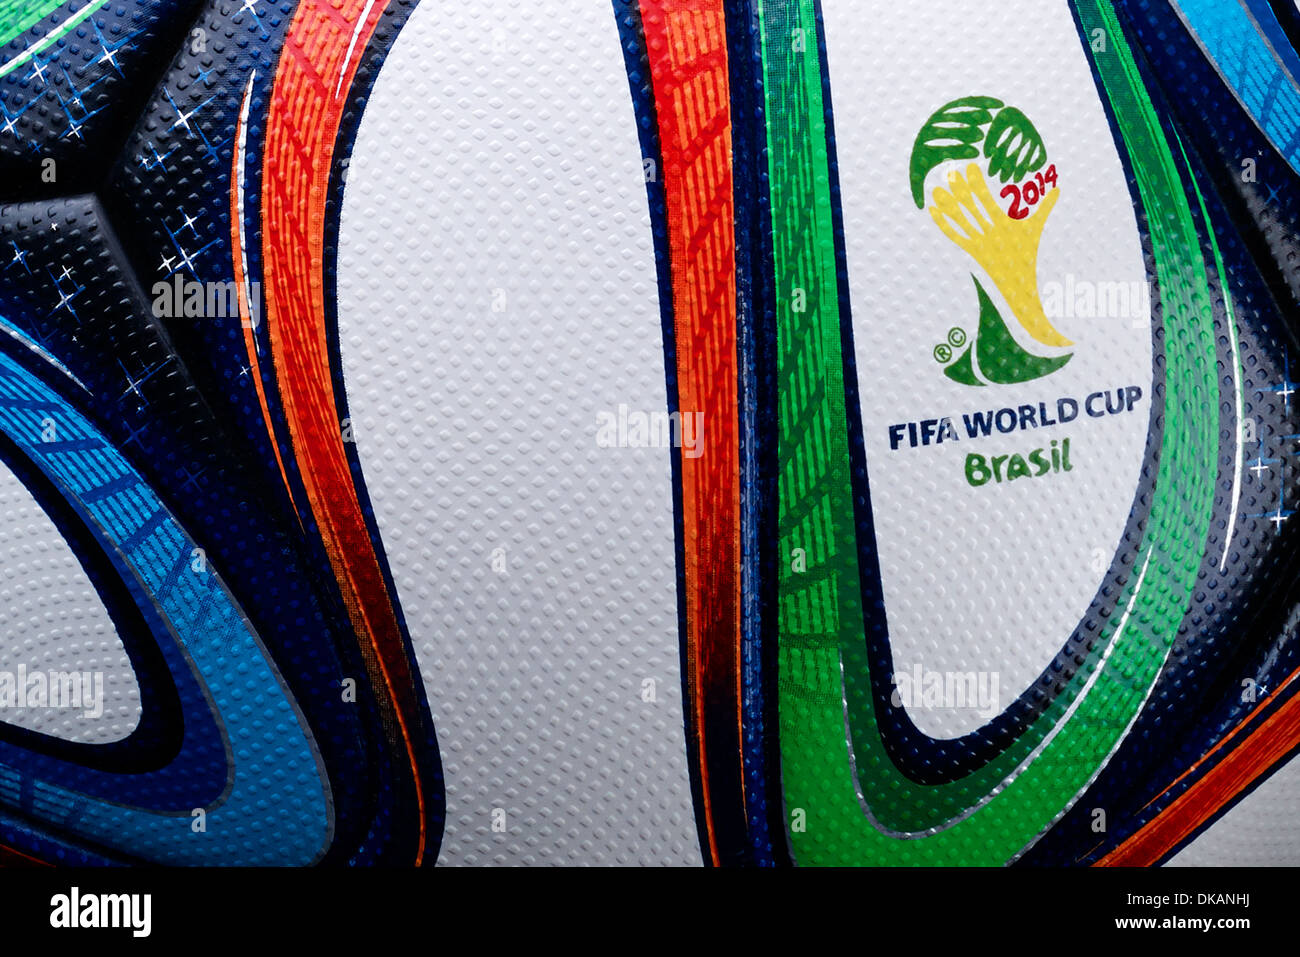 Adidas Brazuca, official match ball of the FIFA World Cup Brasil 2014 - Stock Image